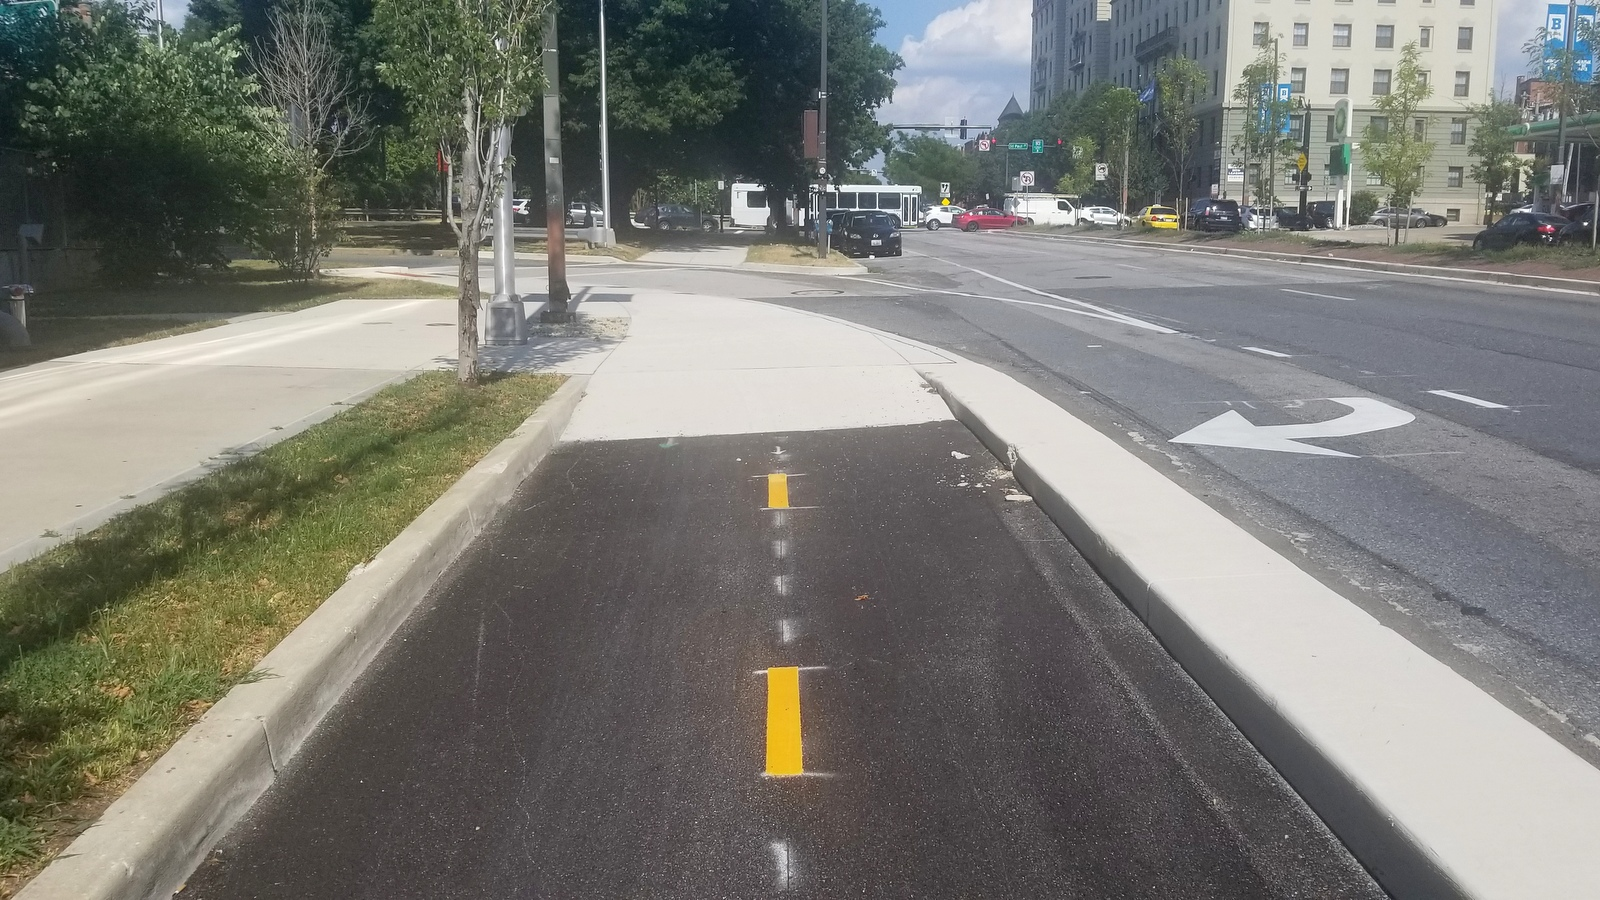 One of the spots where the Mount Royal Avenue two-way bike lane just ends - not connecting to other bike infrastructure. (Ed Gunts)